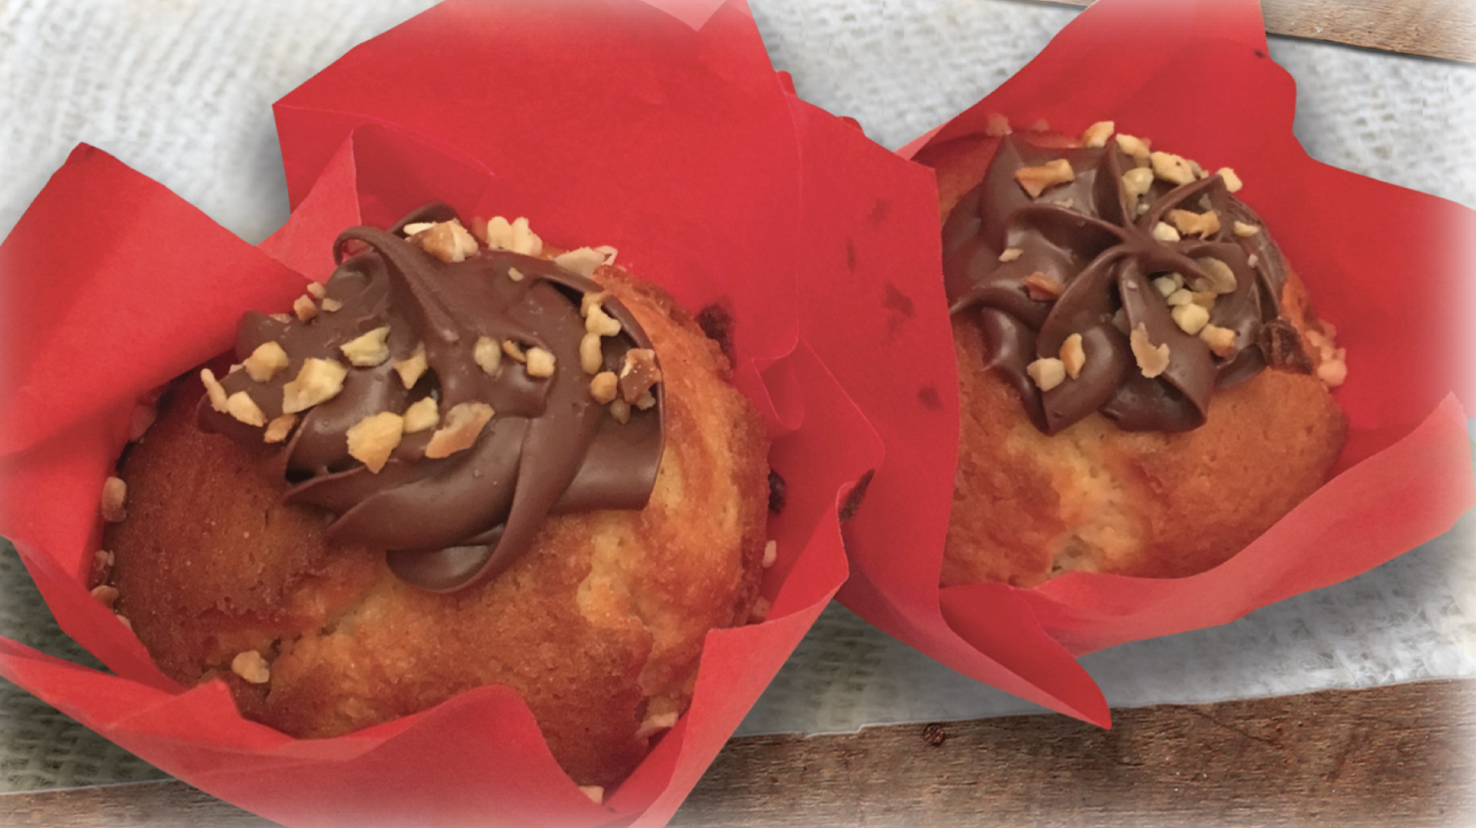 Nutella Muffin (2 pack) - Limited Stock!